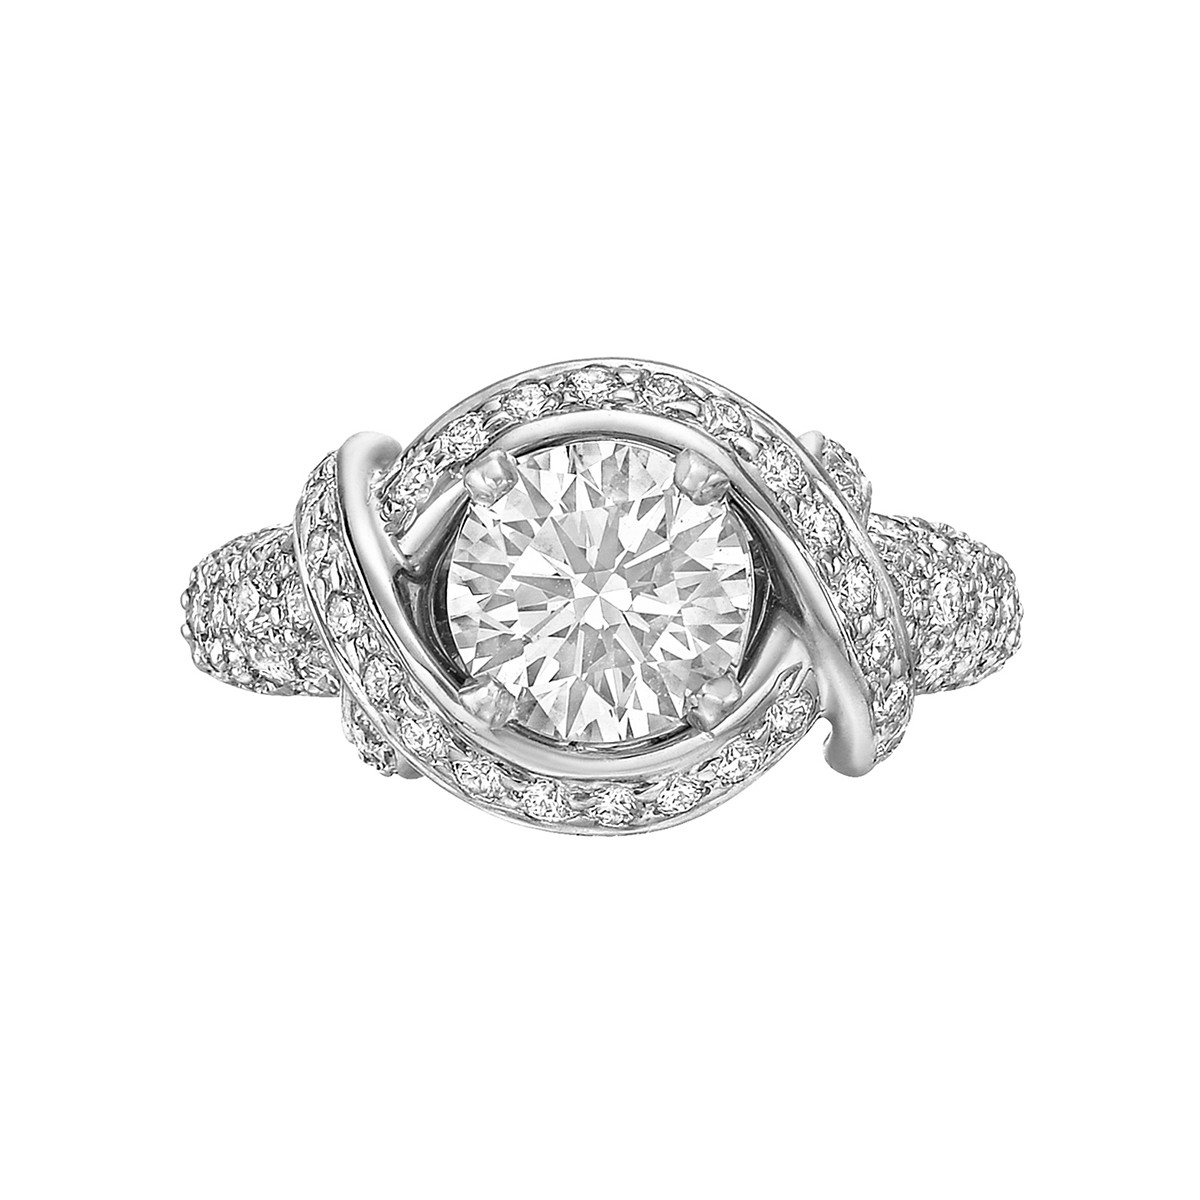 1.36 Carat Round Brilliant Diamond Schlumberger Ring